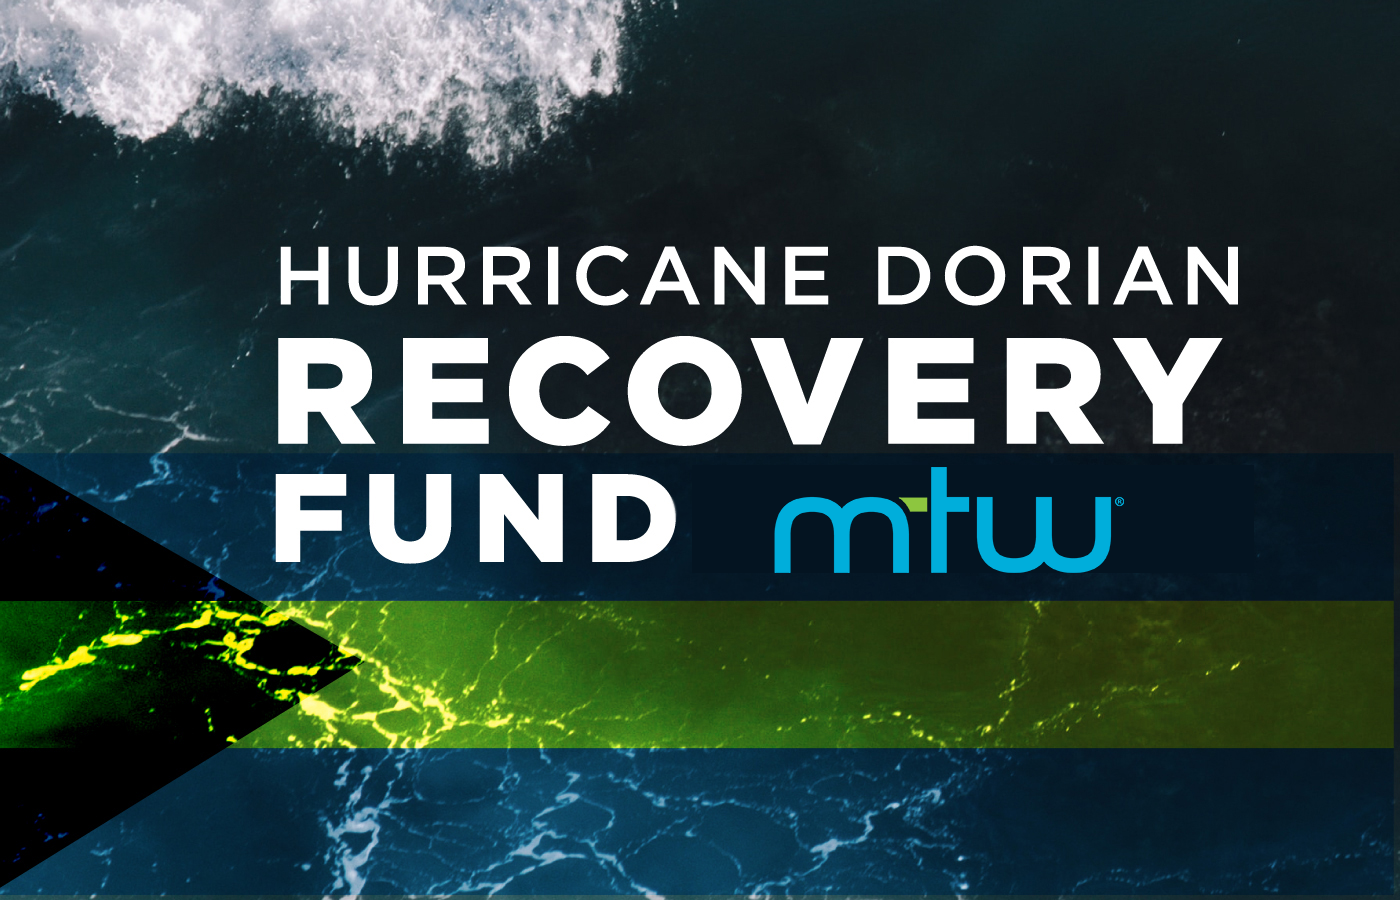 hurricane-dorian-recovery-fundraiser-1.png